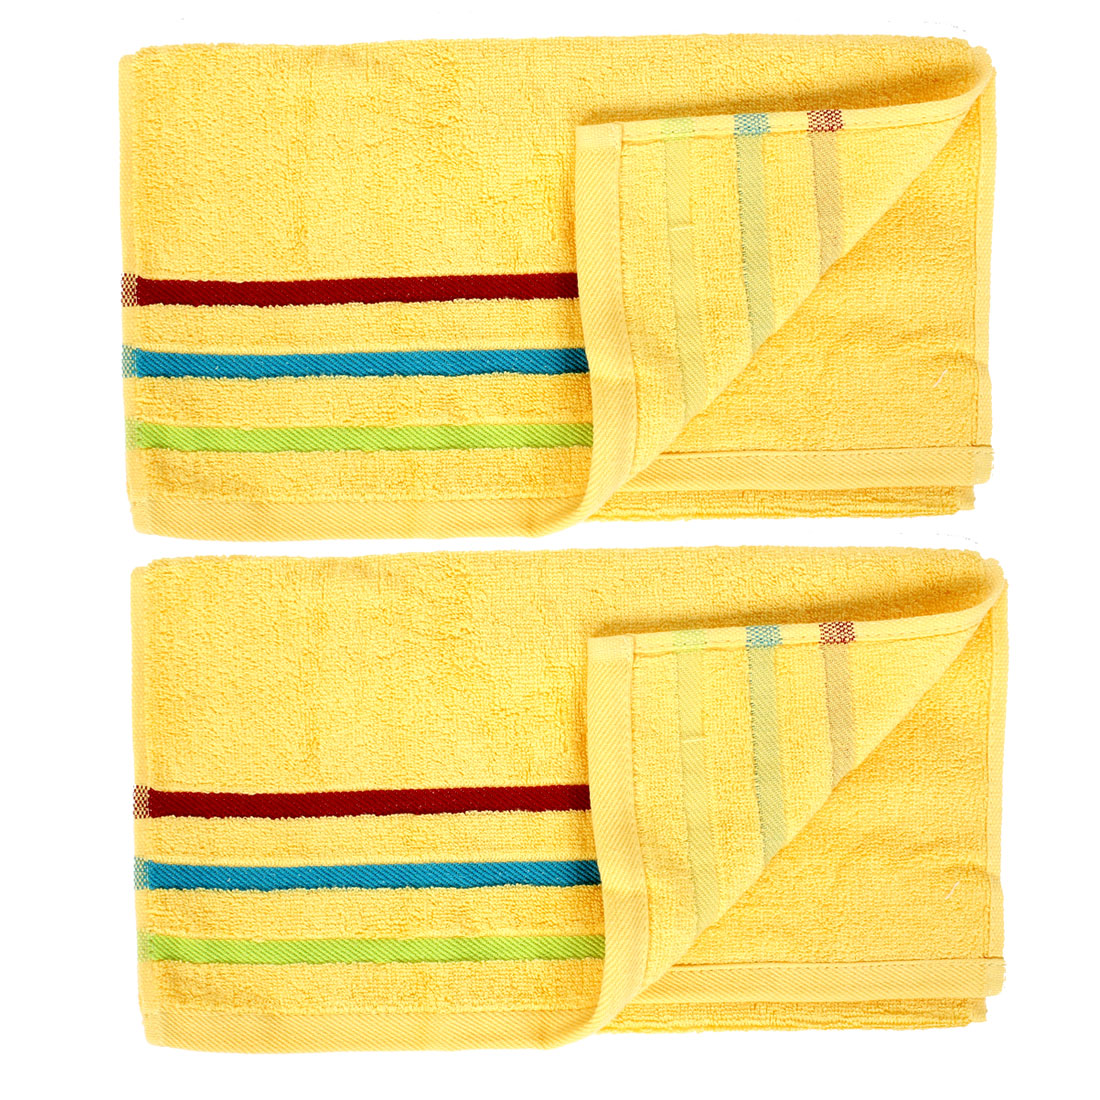 Home Beach Travel Shower Face Washing Terry Towel Washcloths Yellow 2pcs